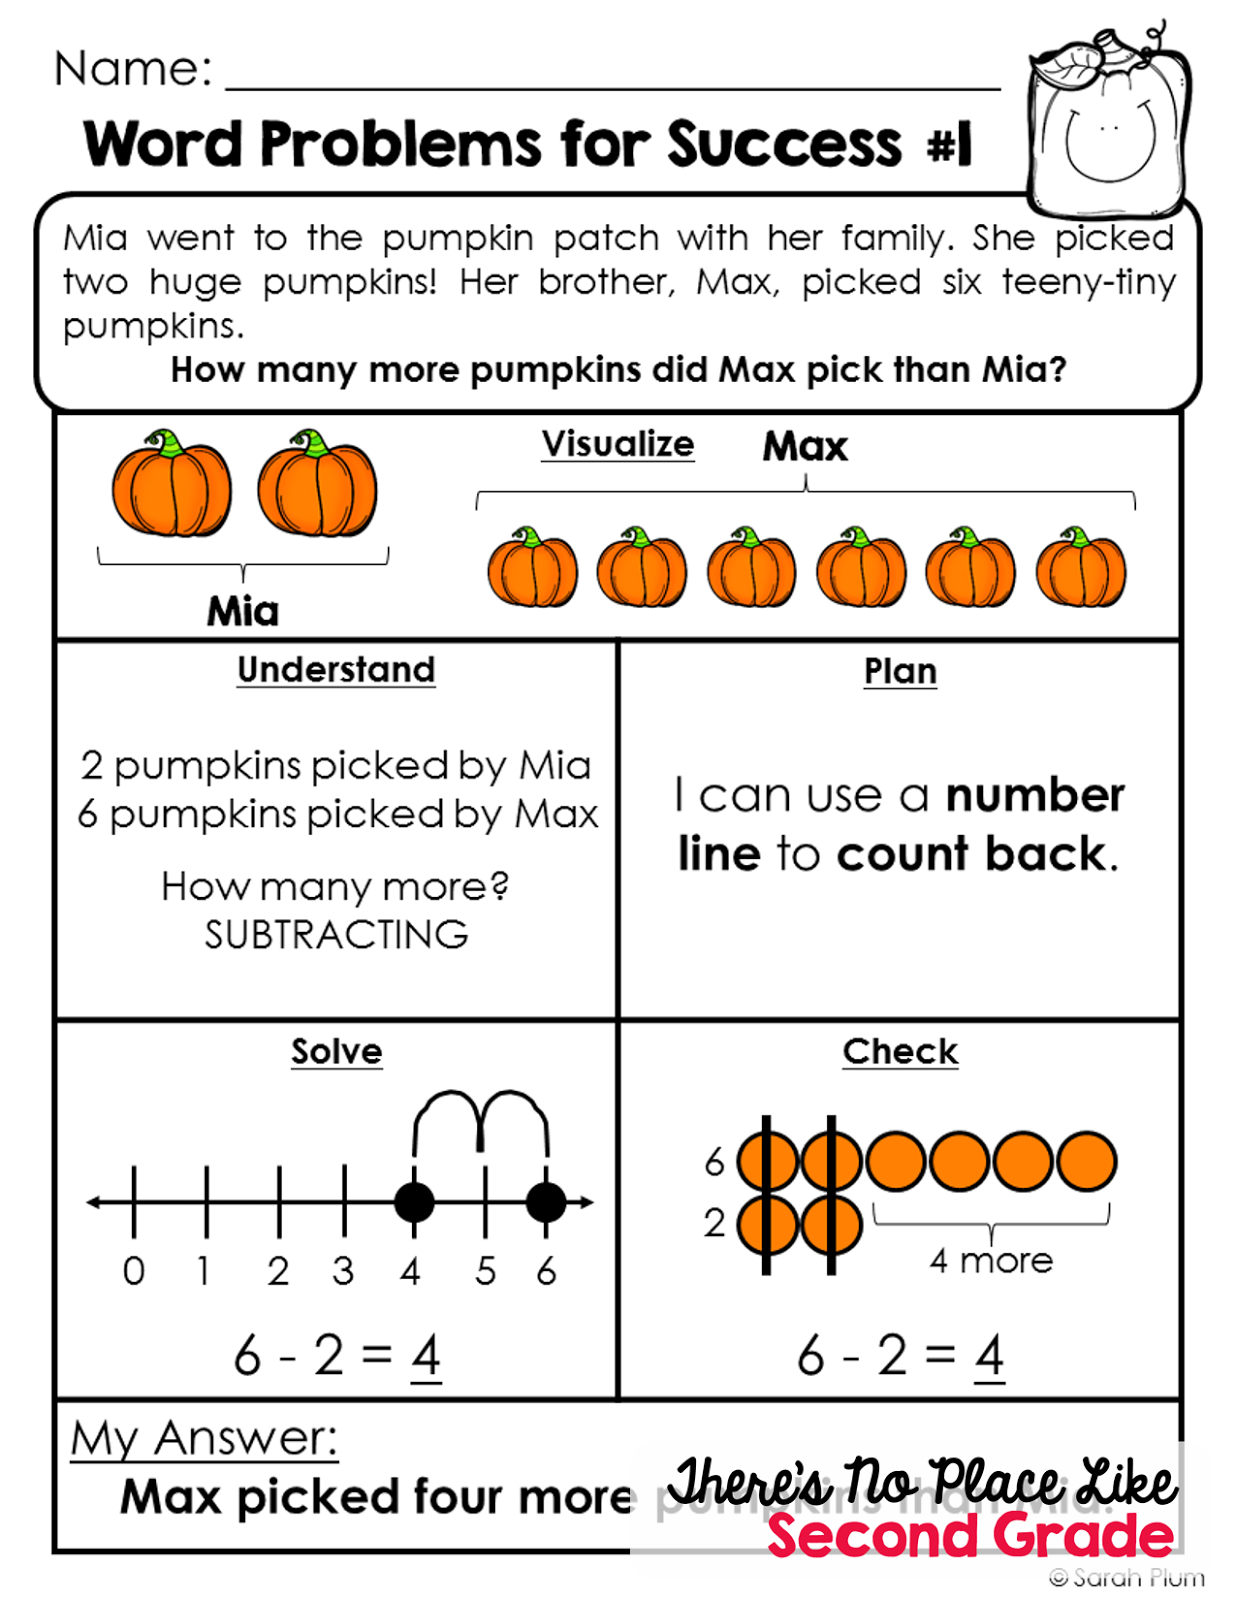 Worksheet Word Problems For 2nd Grade Math worksheet second grade math word problems mikyu free two step multiplication for 3rd viking 2nd